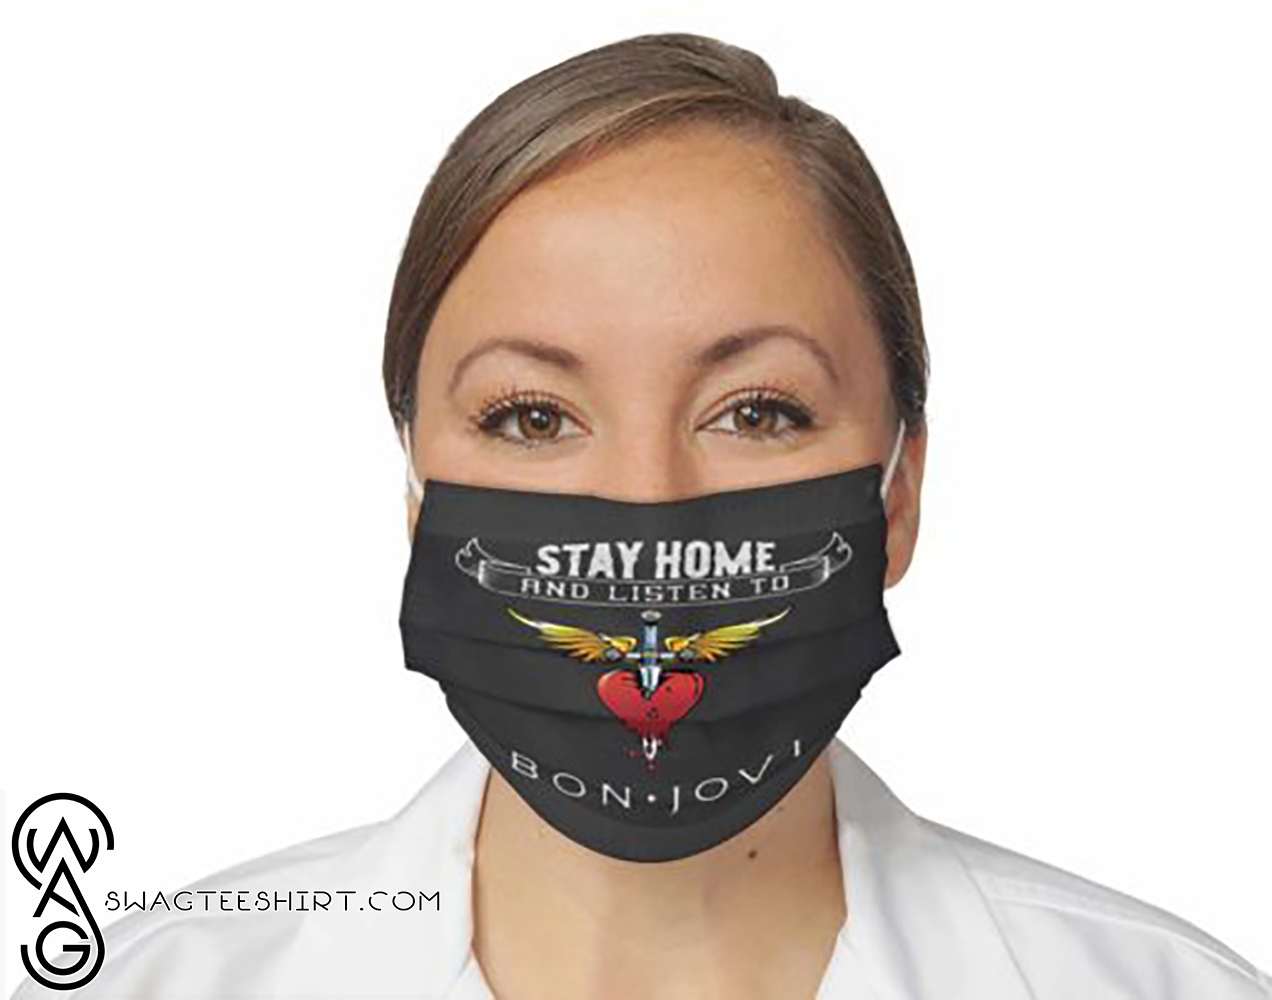 Stay home and listen to bon jovi all over printed face mask - maria